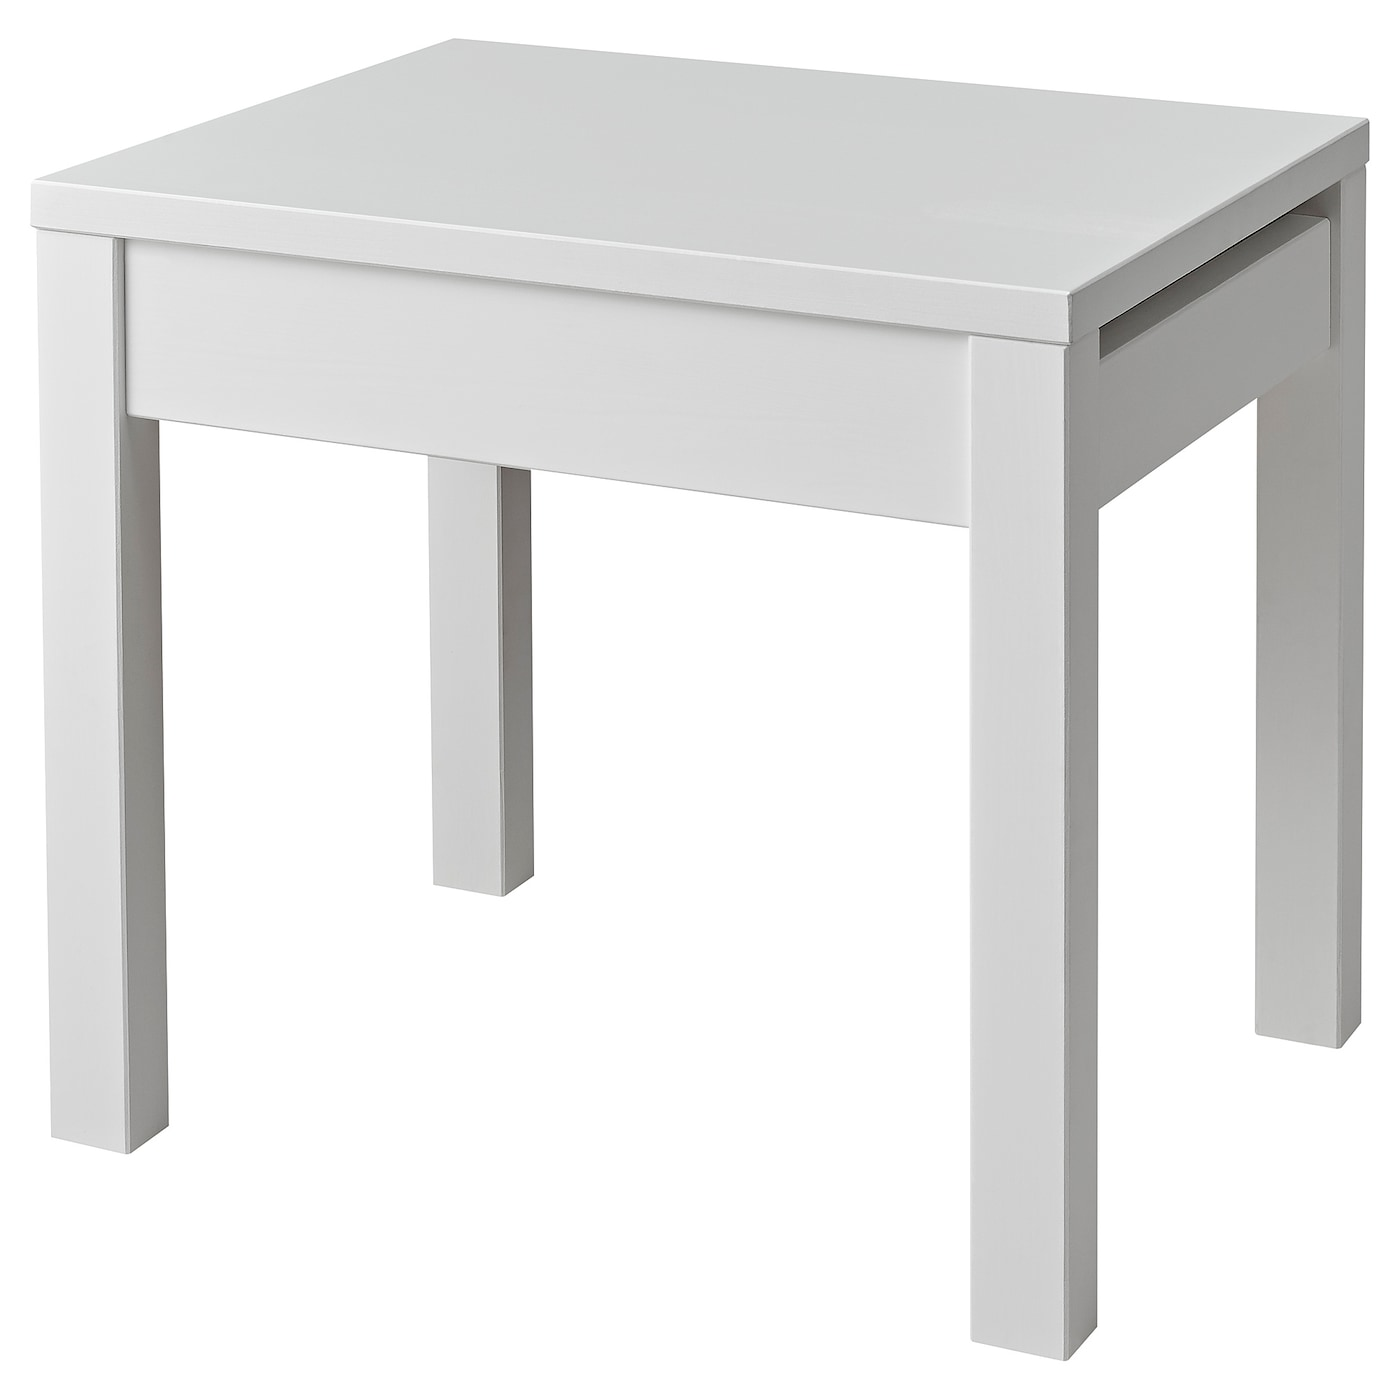 hemnes tabouret avec rangement blanc ikea. Black Bedroom Furniture Sets. Home Design Ideas